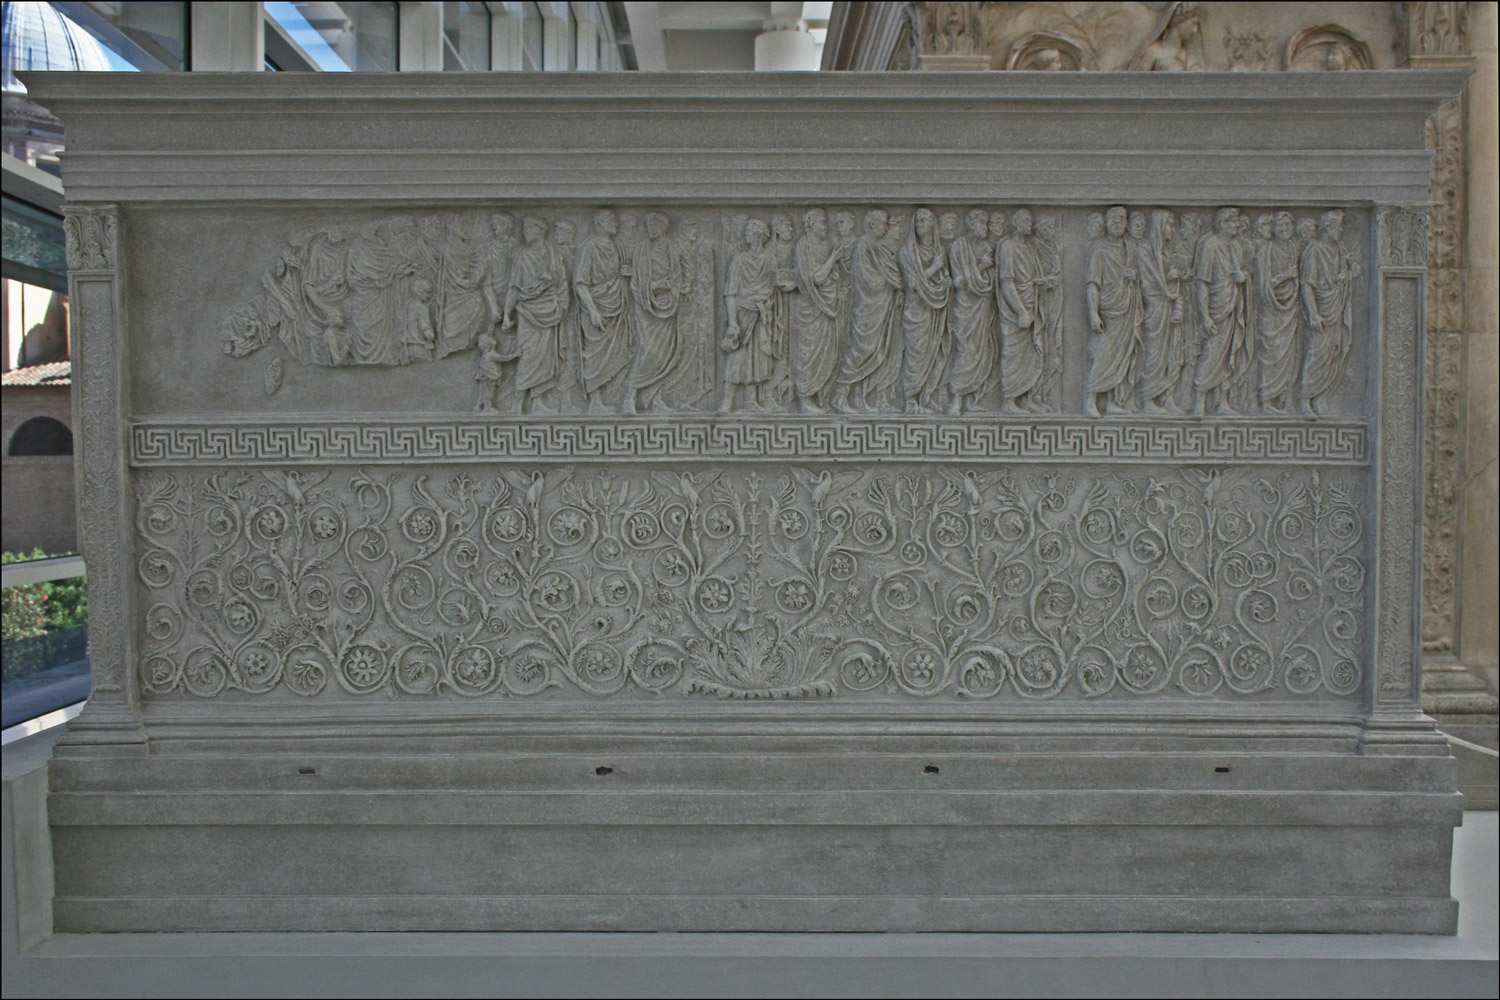 Ara Pacis Augustae - Model of North Wall